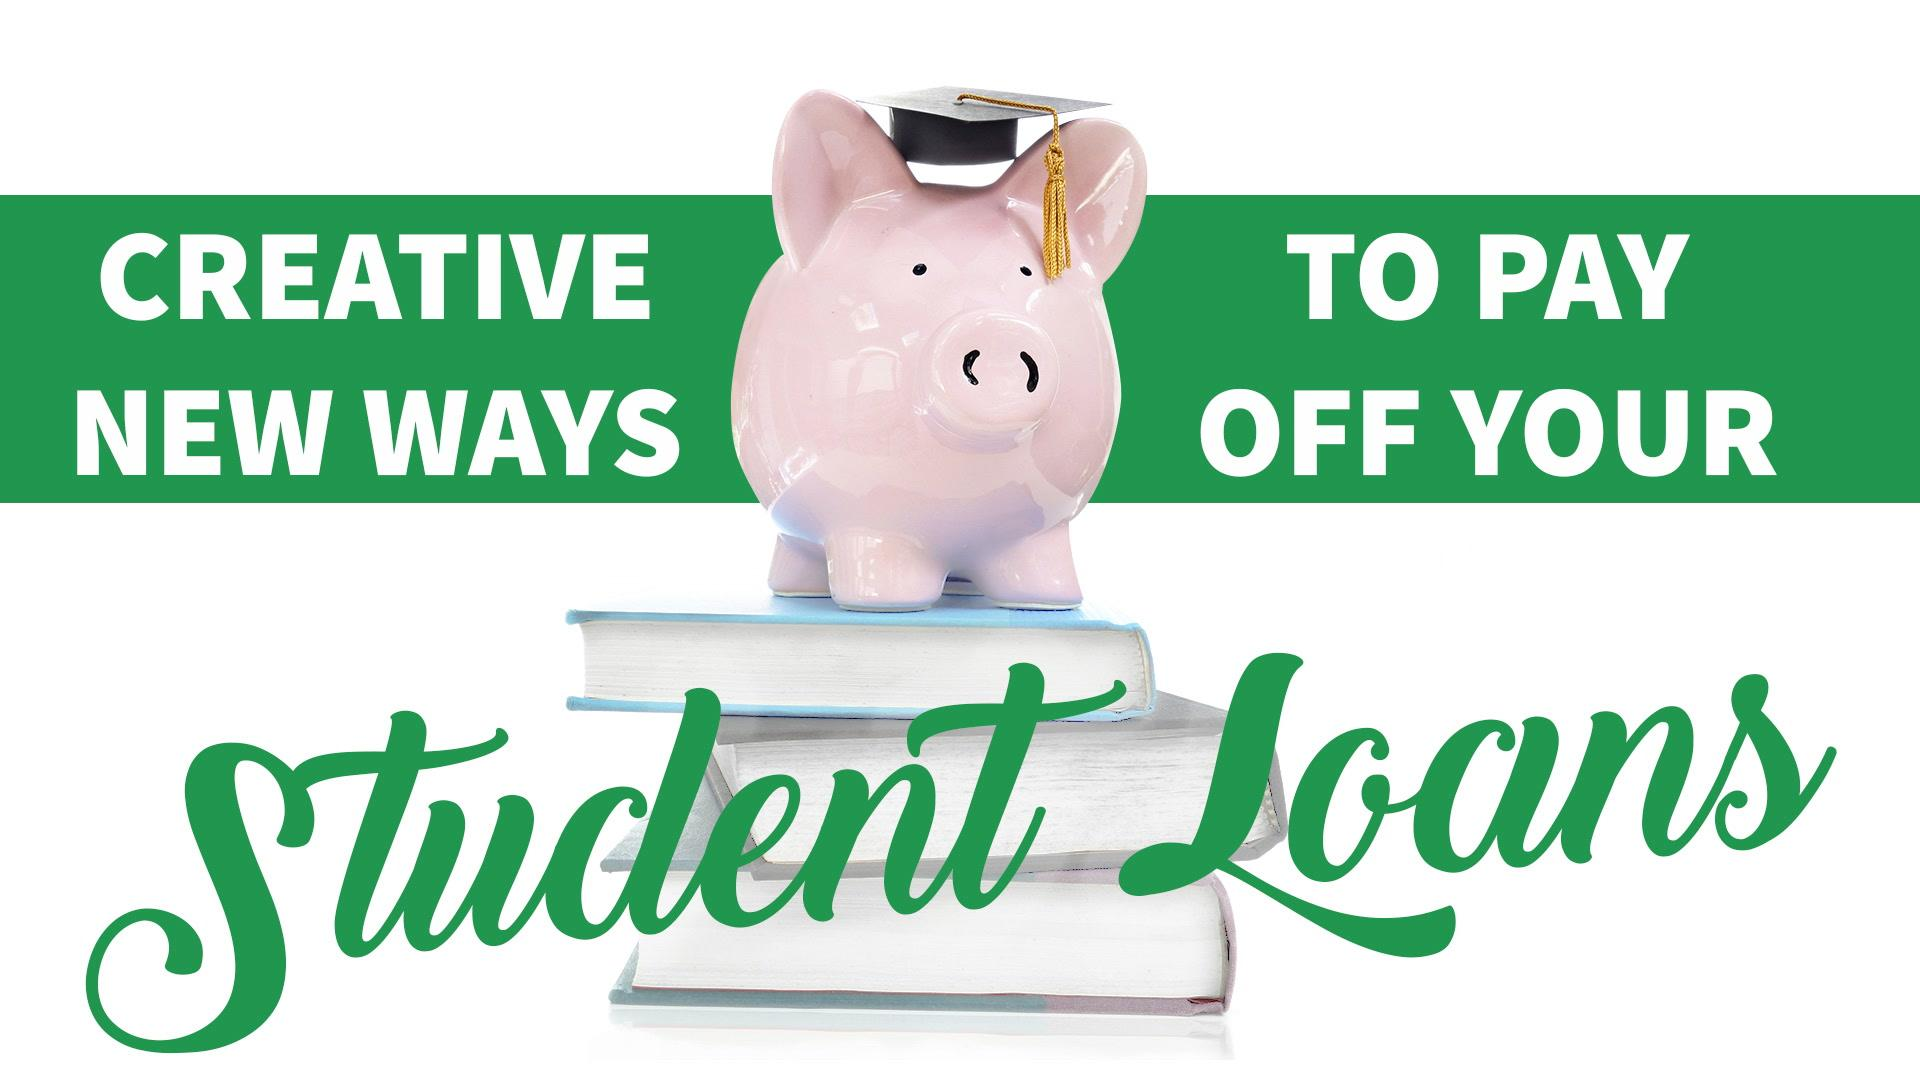 Creative New Ways to Pay Off Your Student Loans